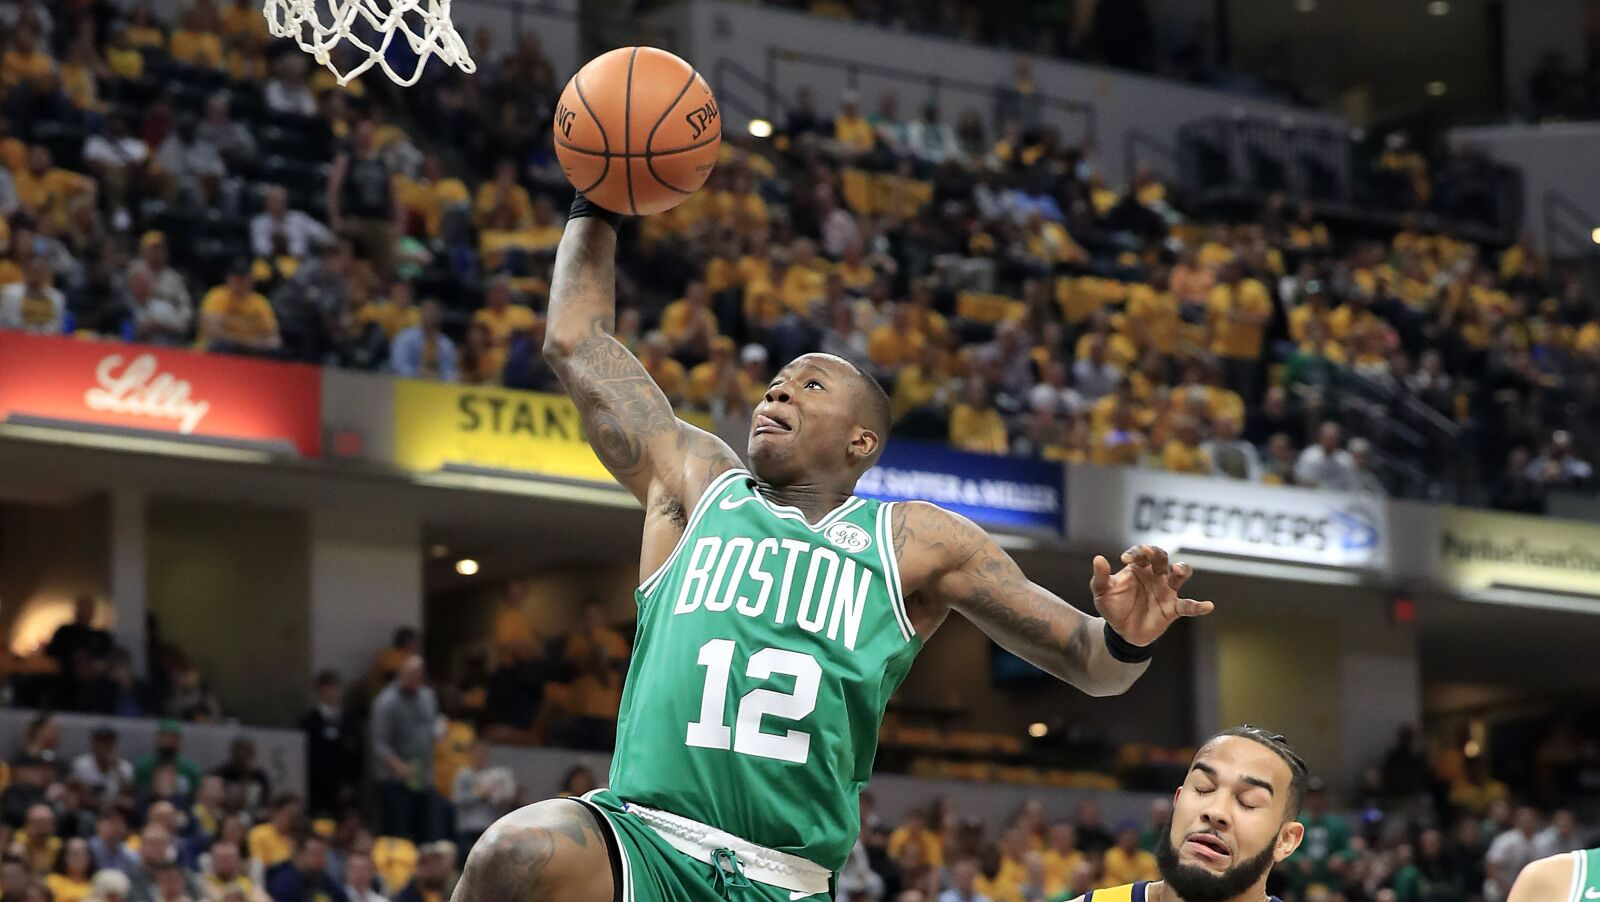 New York Knicks: Terry Rozier envisions prospect of joining in free agency